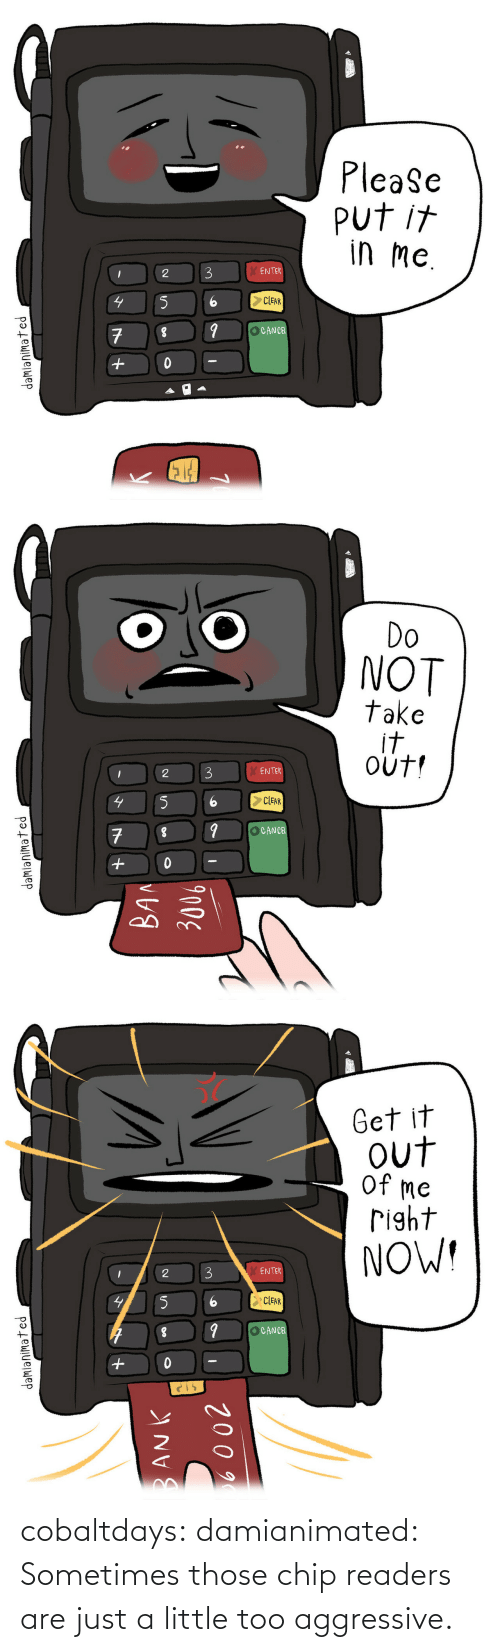 Chip: cobaltdays: damianimated: Sometimes those chip readers are just a little too aggressive.